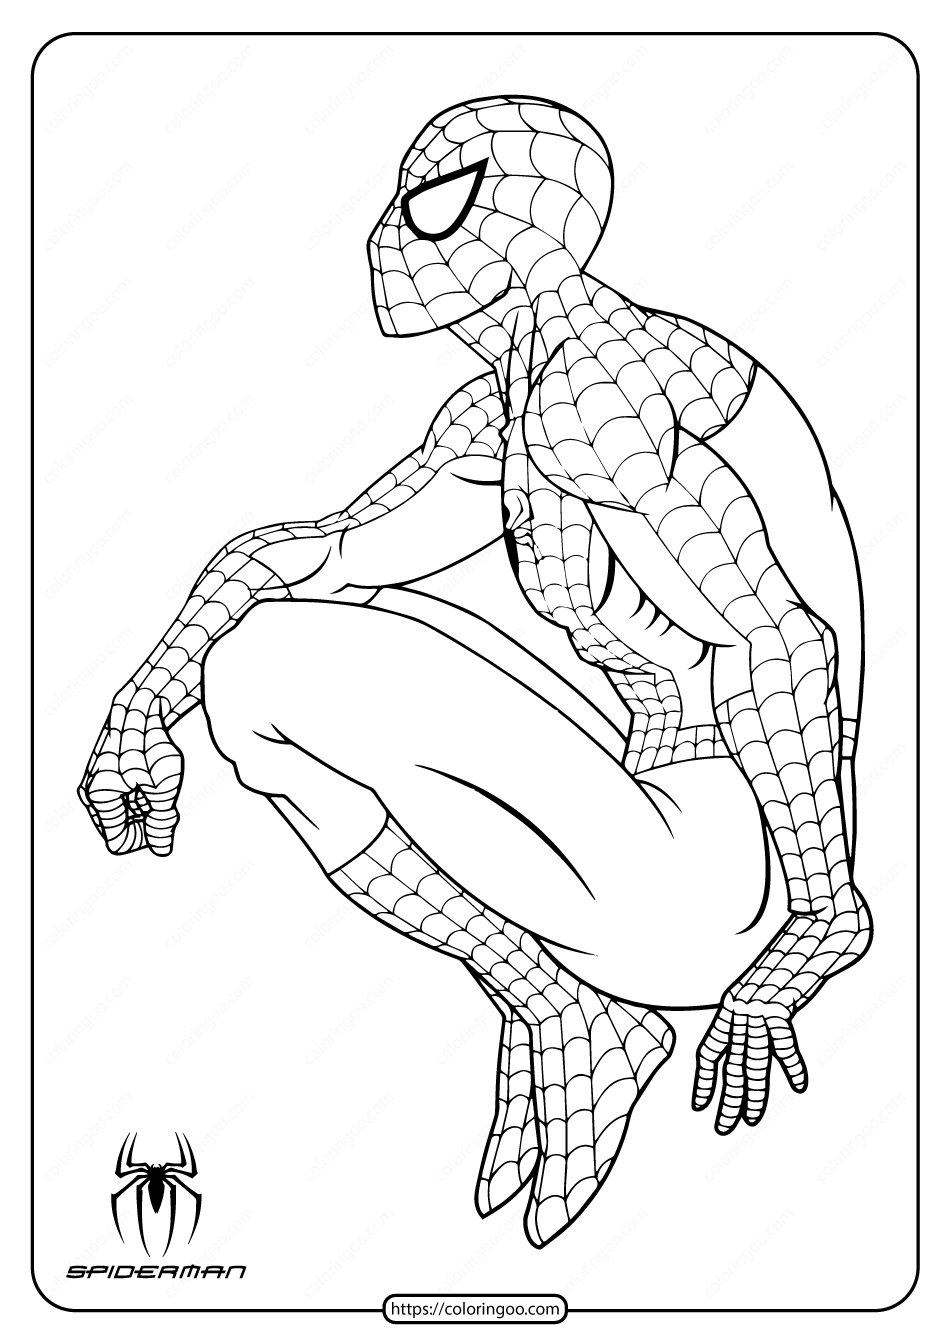 Marvel Hero Spiderman Pdf Coloring Page Avengers Coloring Pages Spiderman Coloring Superhero Coloring Pages